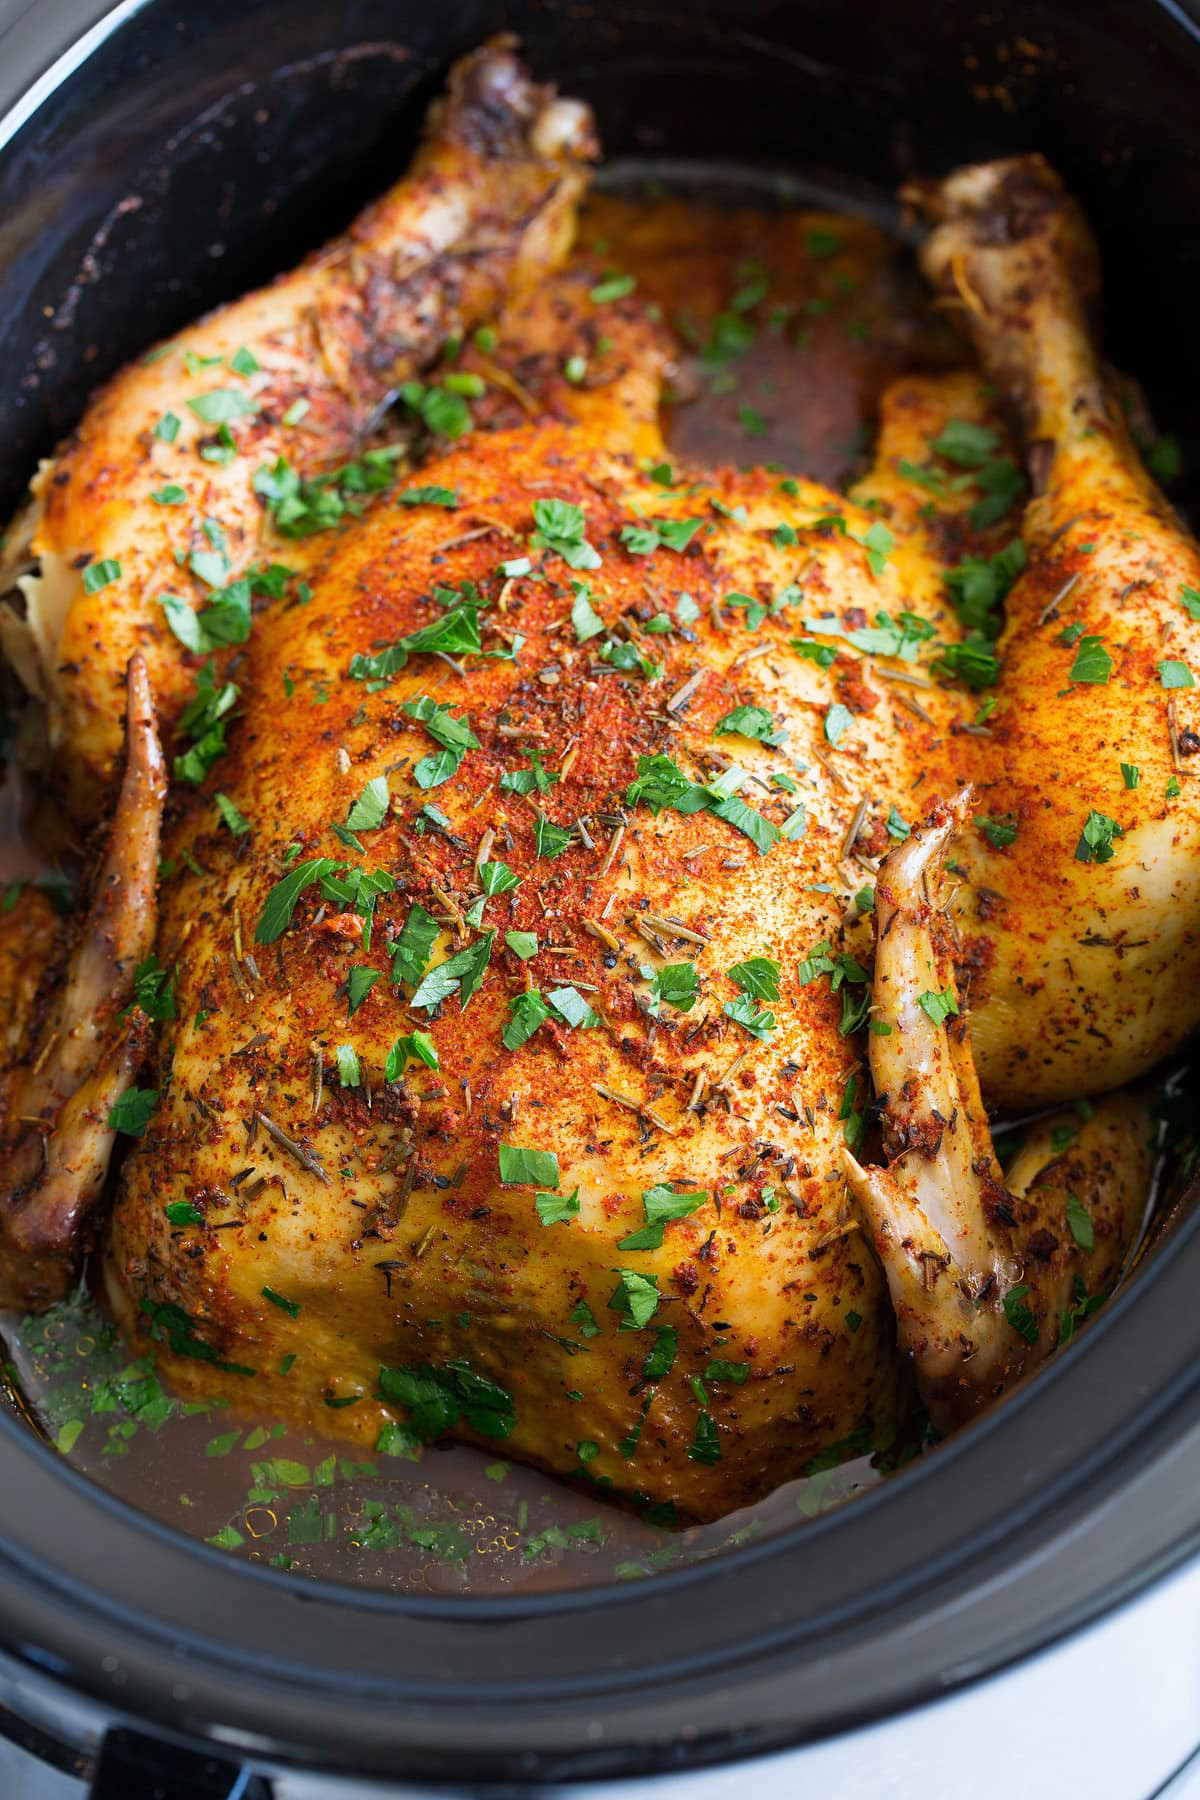 Whole Chicken In A Slow Cooker  Slow Cooker Chicken Whole Rotisserie Style Cooking Classy